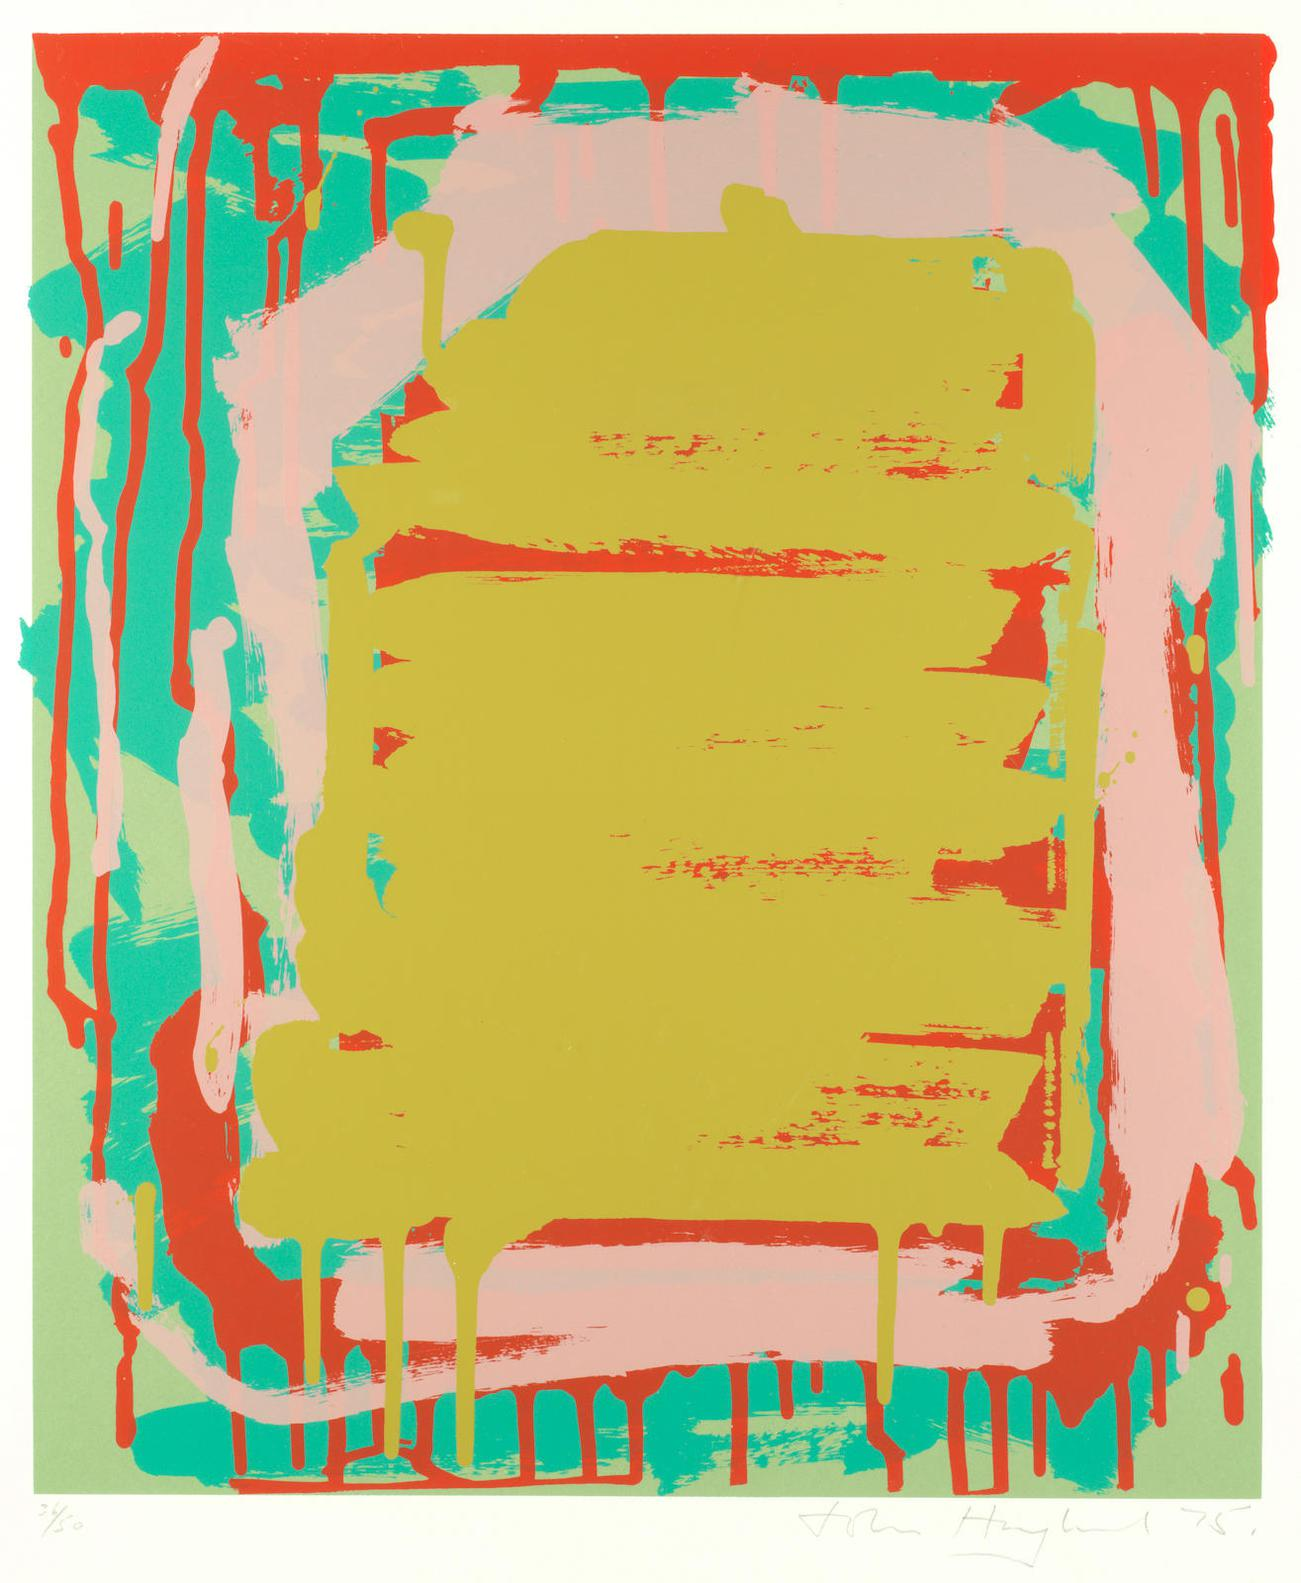 John Hoyland-Untitled (Ochre); Untitled (Red), From Sutton Suite Two Lithographs Printed In Colours, 1975, On Wove, Signed, Dated And Numbered Respectively 36/50 And 34/50 In Pencil, With Full Margins, 555 X 458Mm (21 7/8 X 18In)(I)-1975